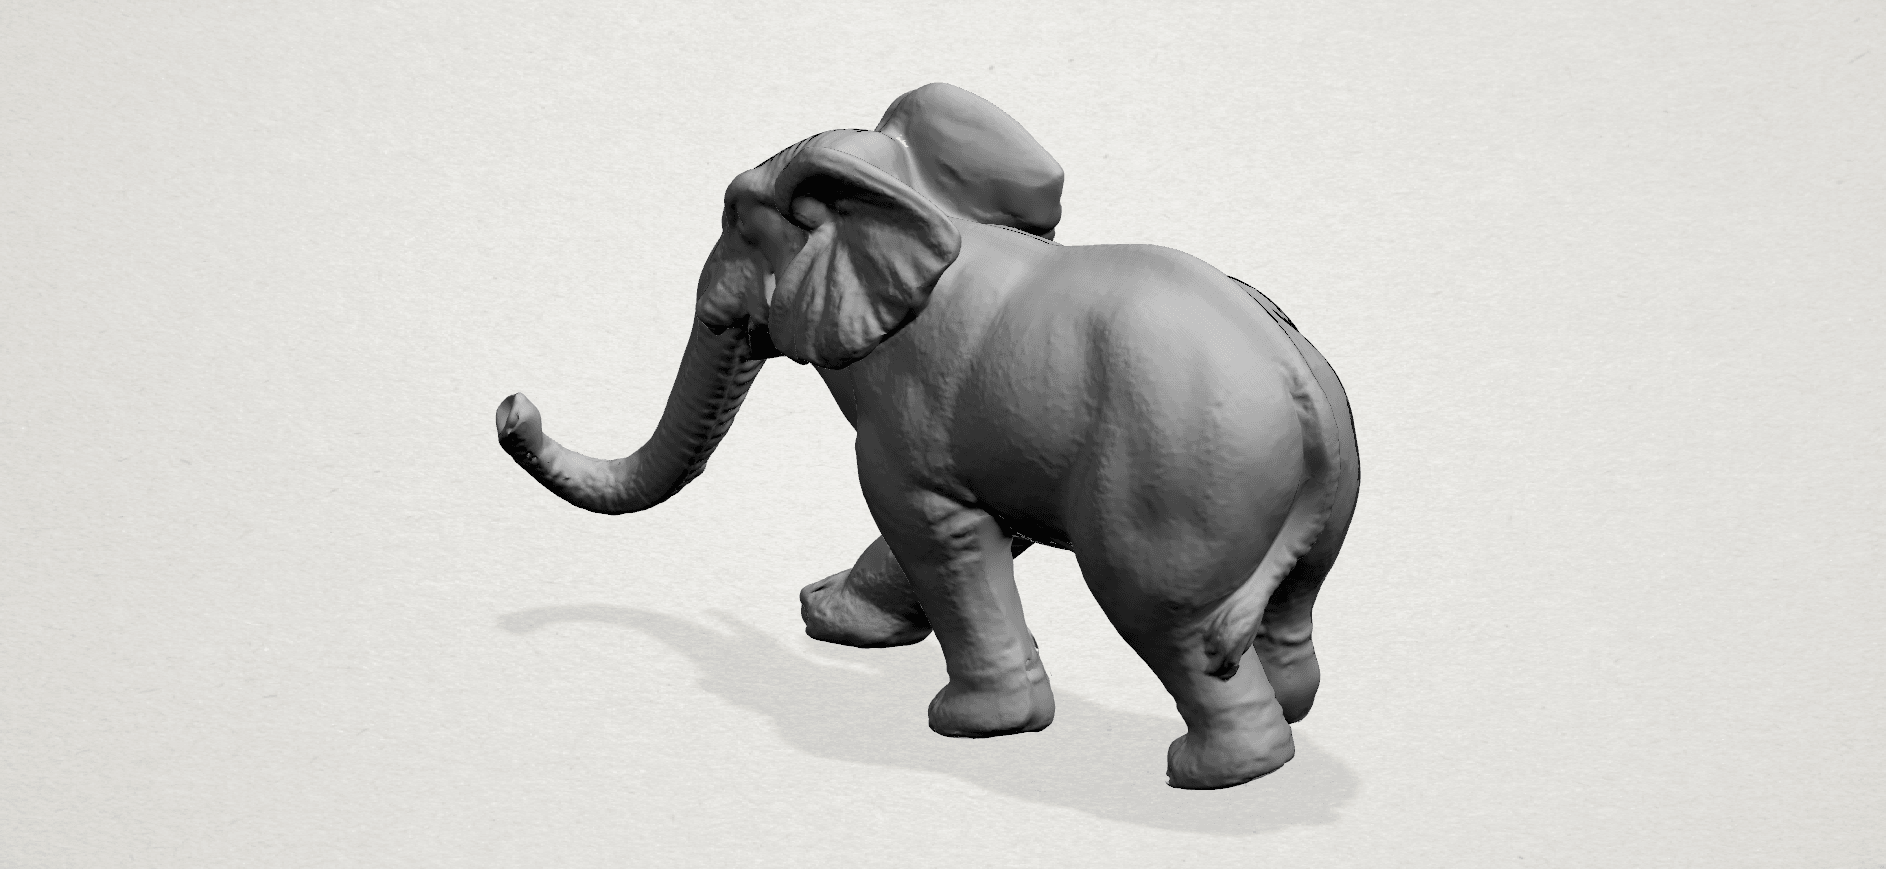 Elephant 01 -A02.png Download free STL file Elephant 01 • 3D printer design, GeorgesNikkei